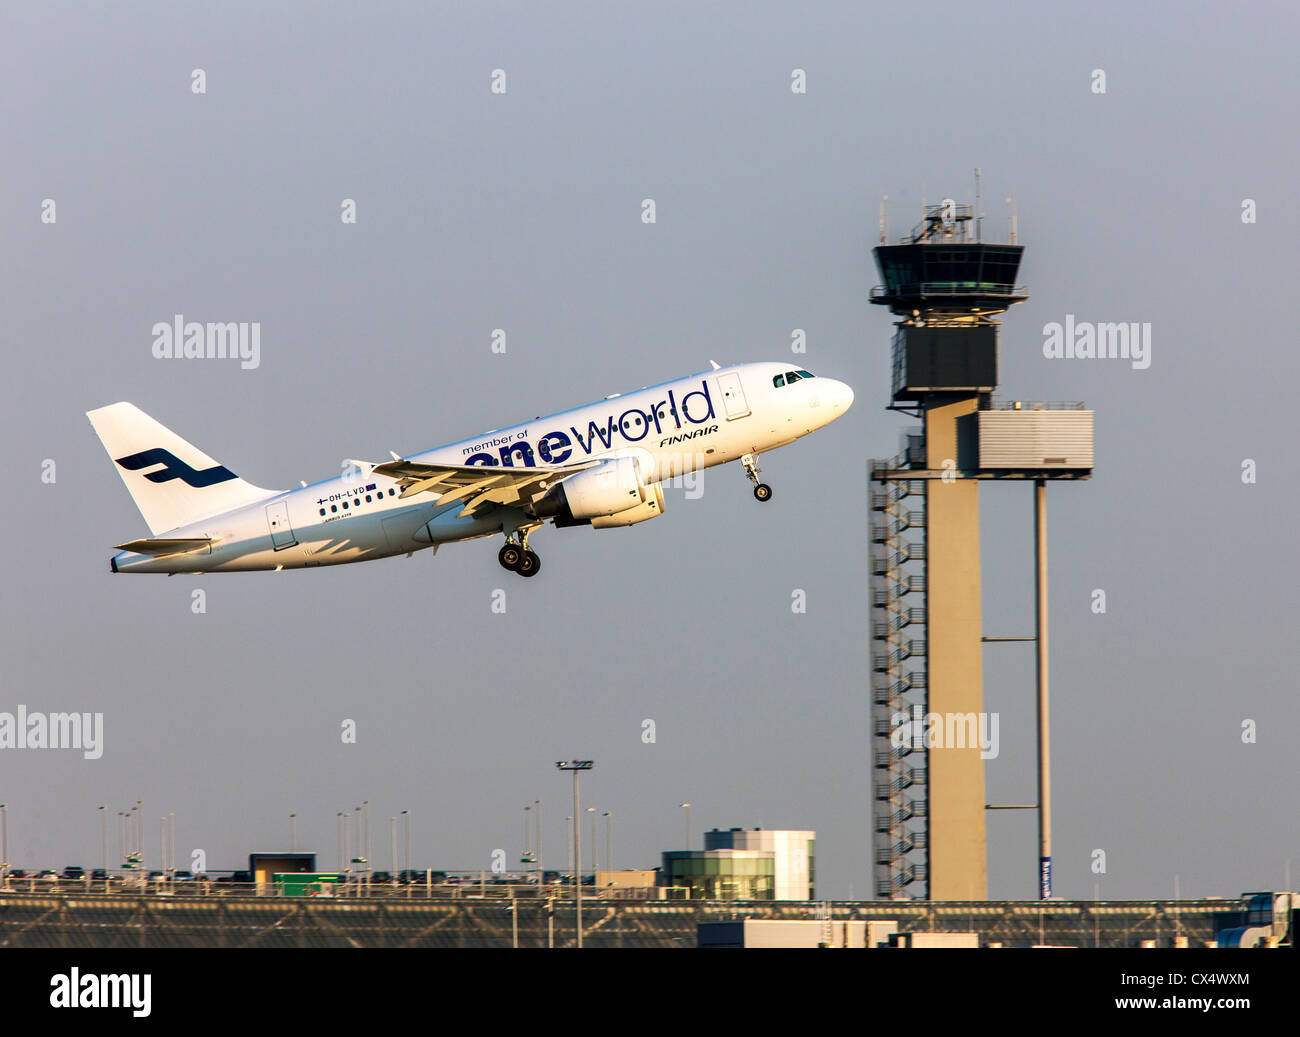 Airplane is taking off from a runway at Düsseldorf International Airport. Air traffic control tower. Düsseldorf, - Stock Image